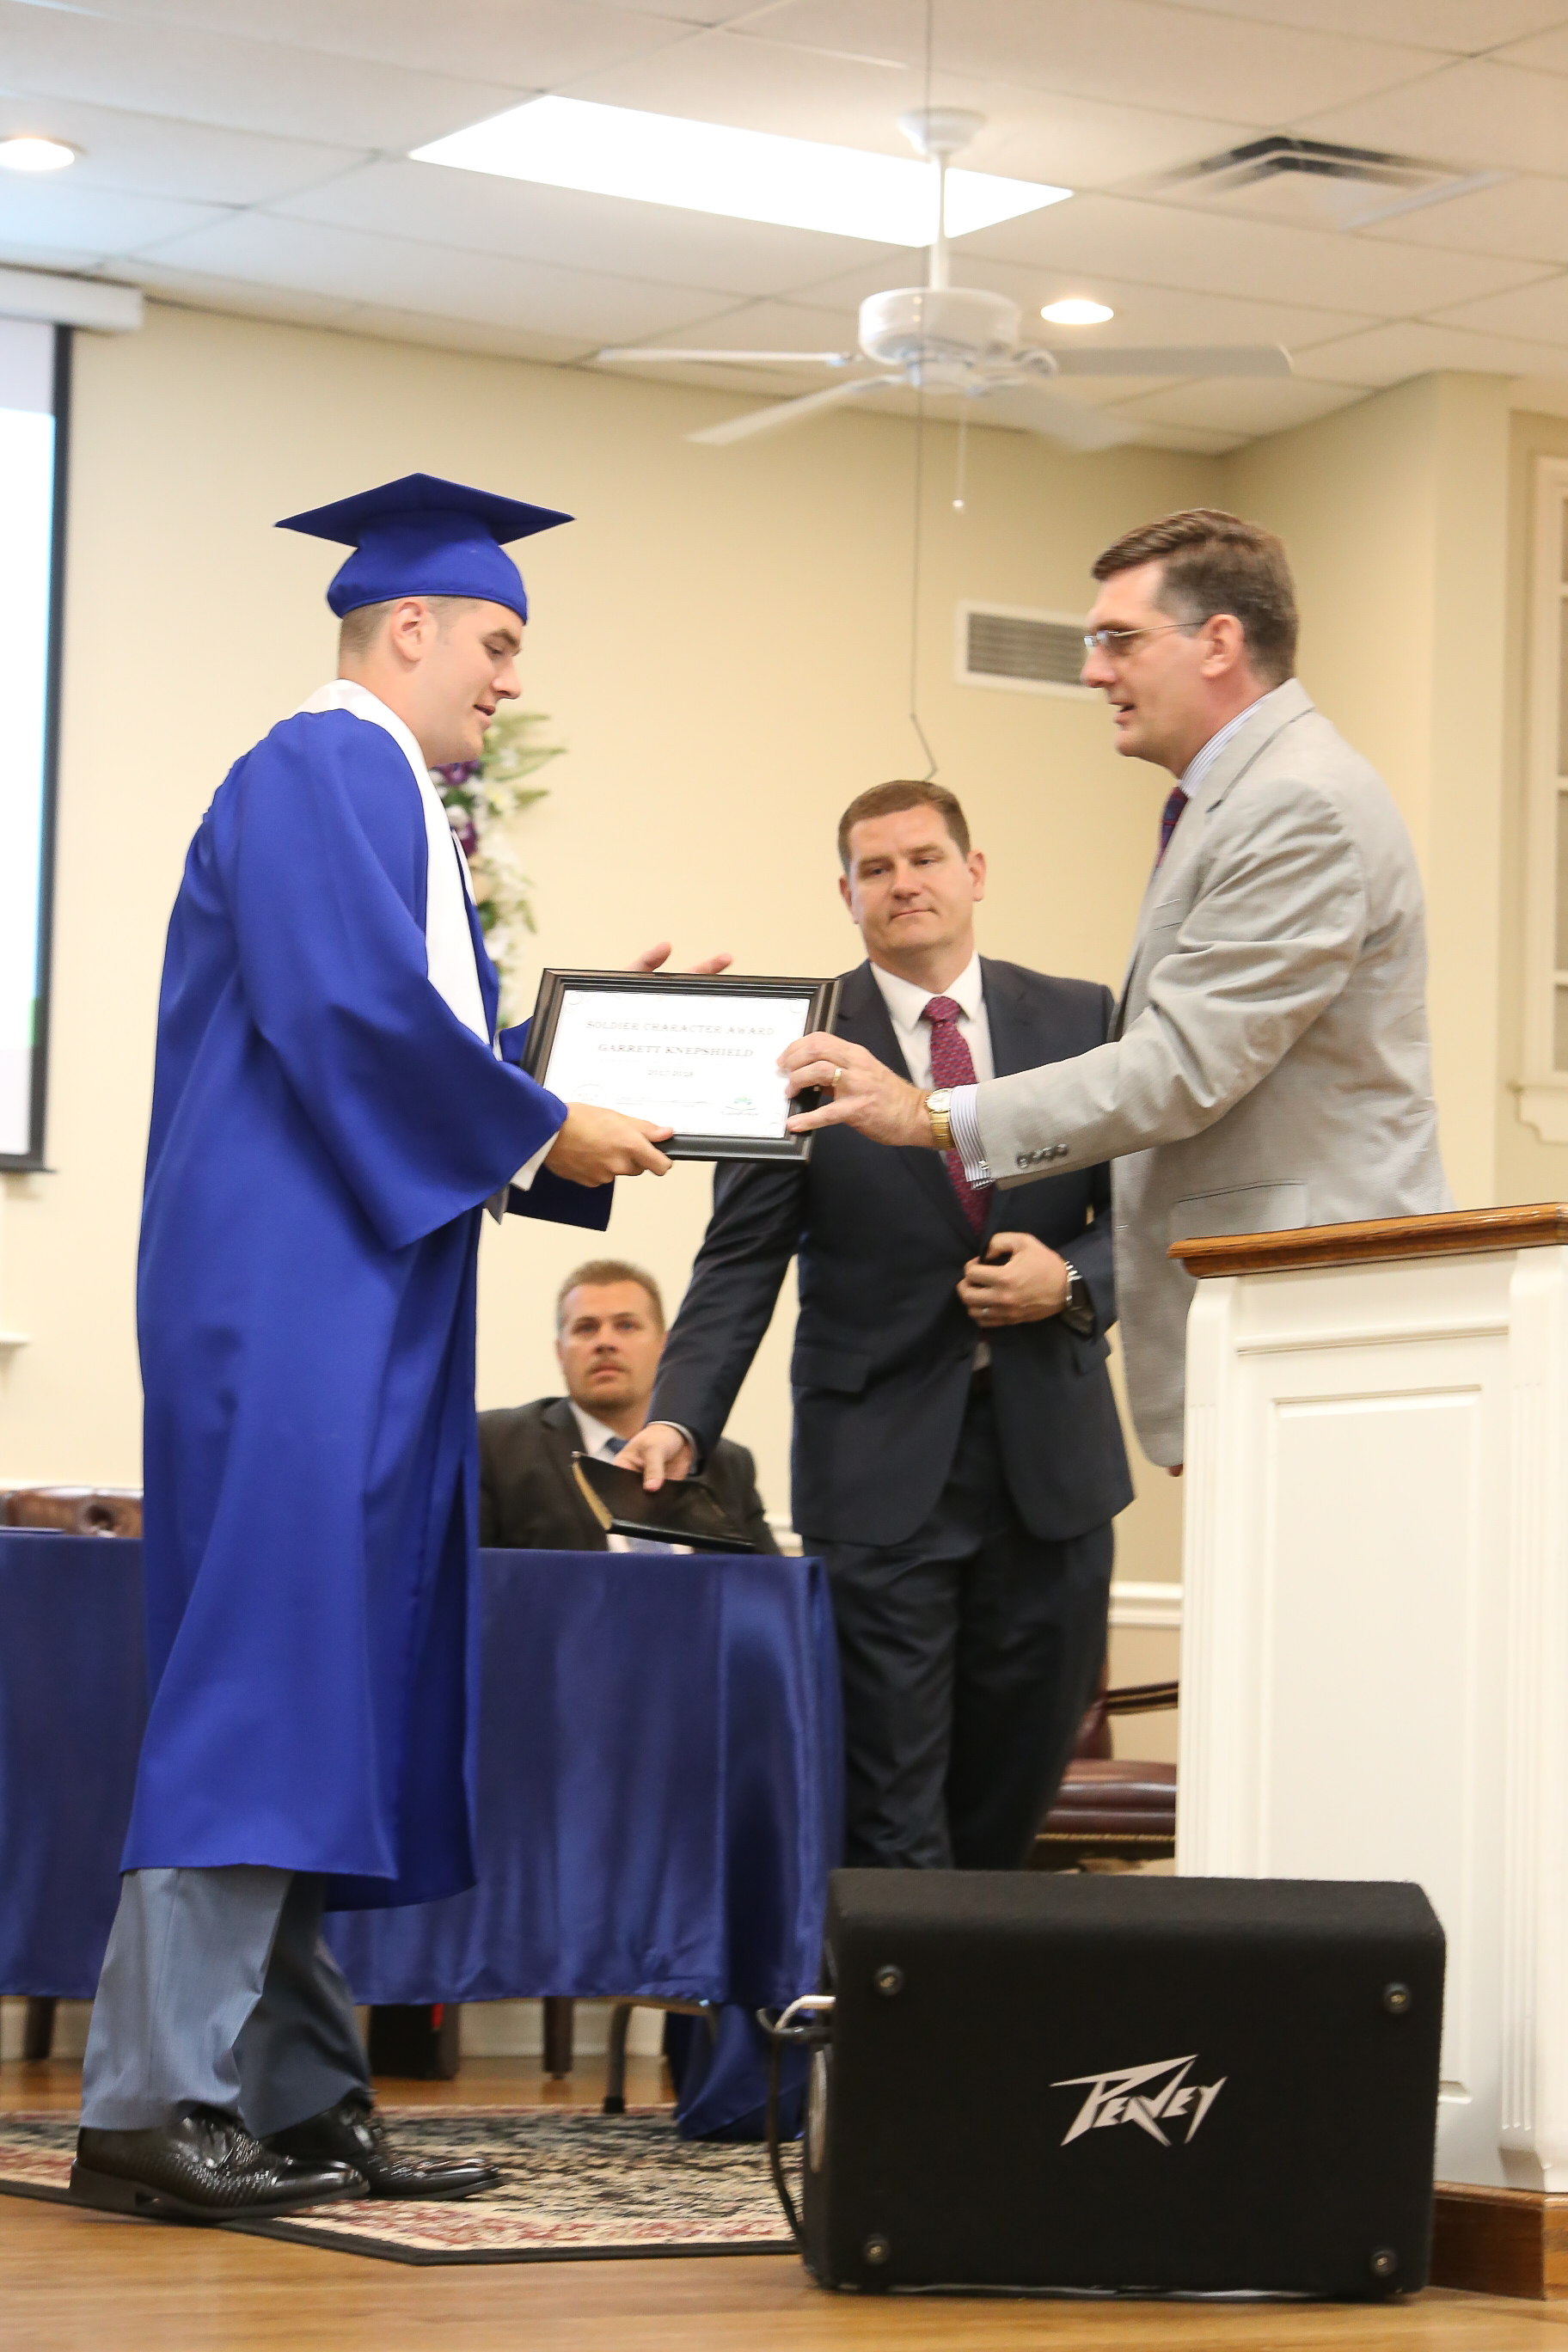 Our students graduate, ready to follow God's will for their lives.